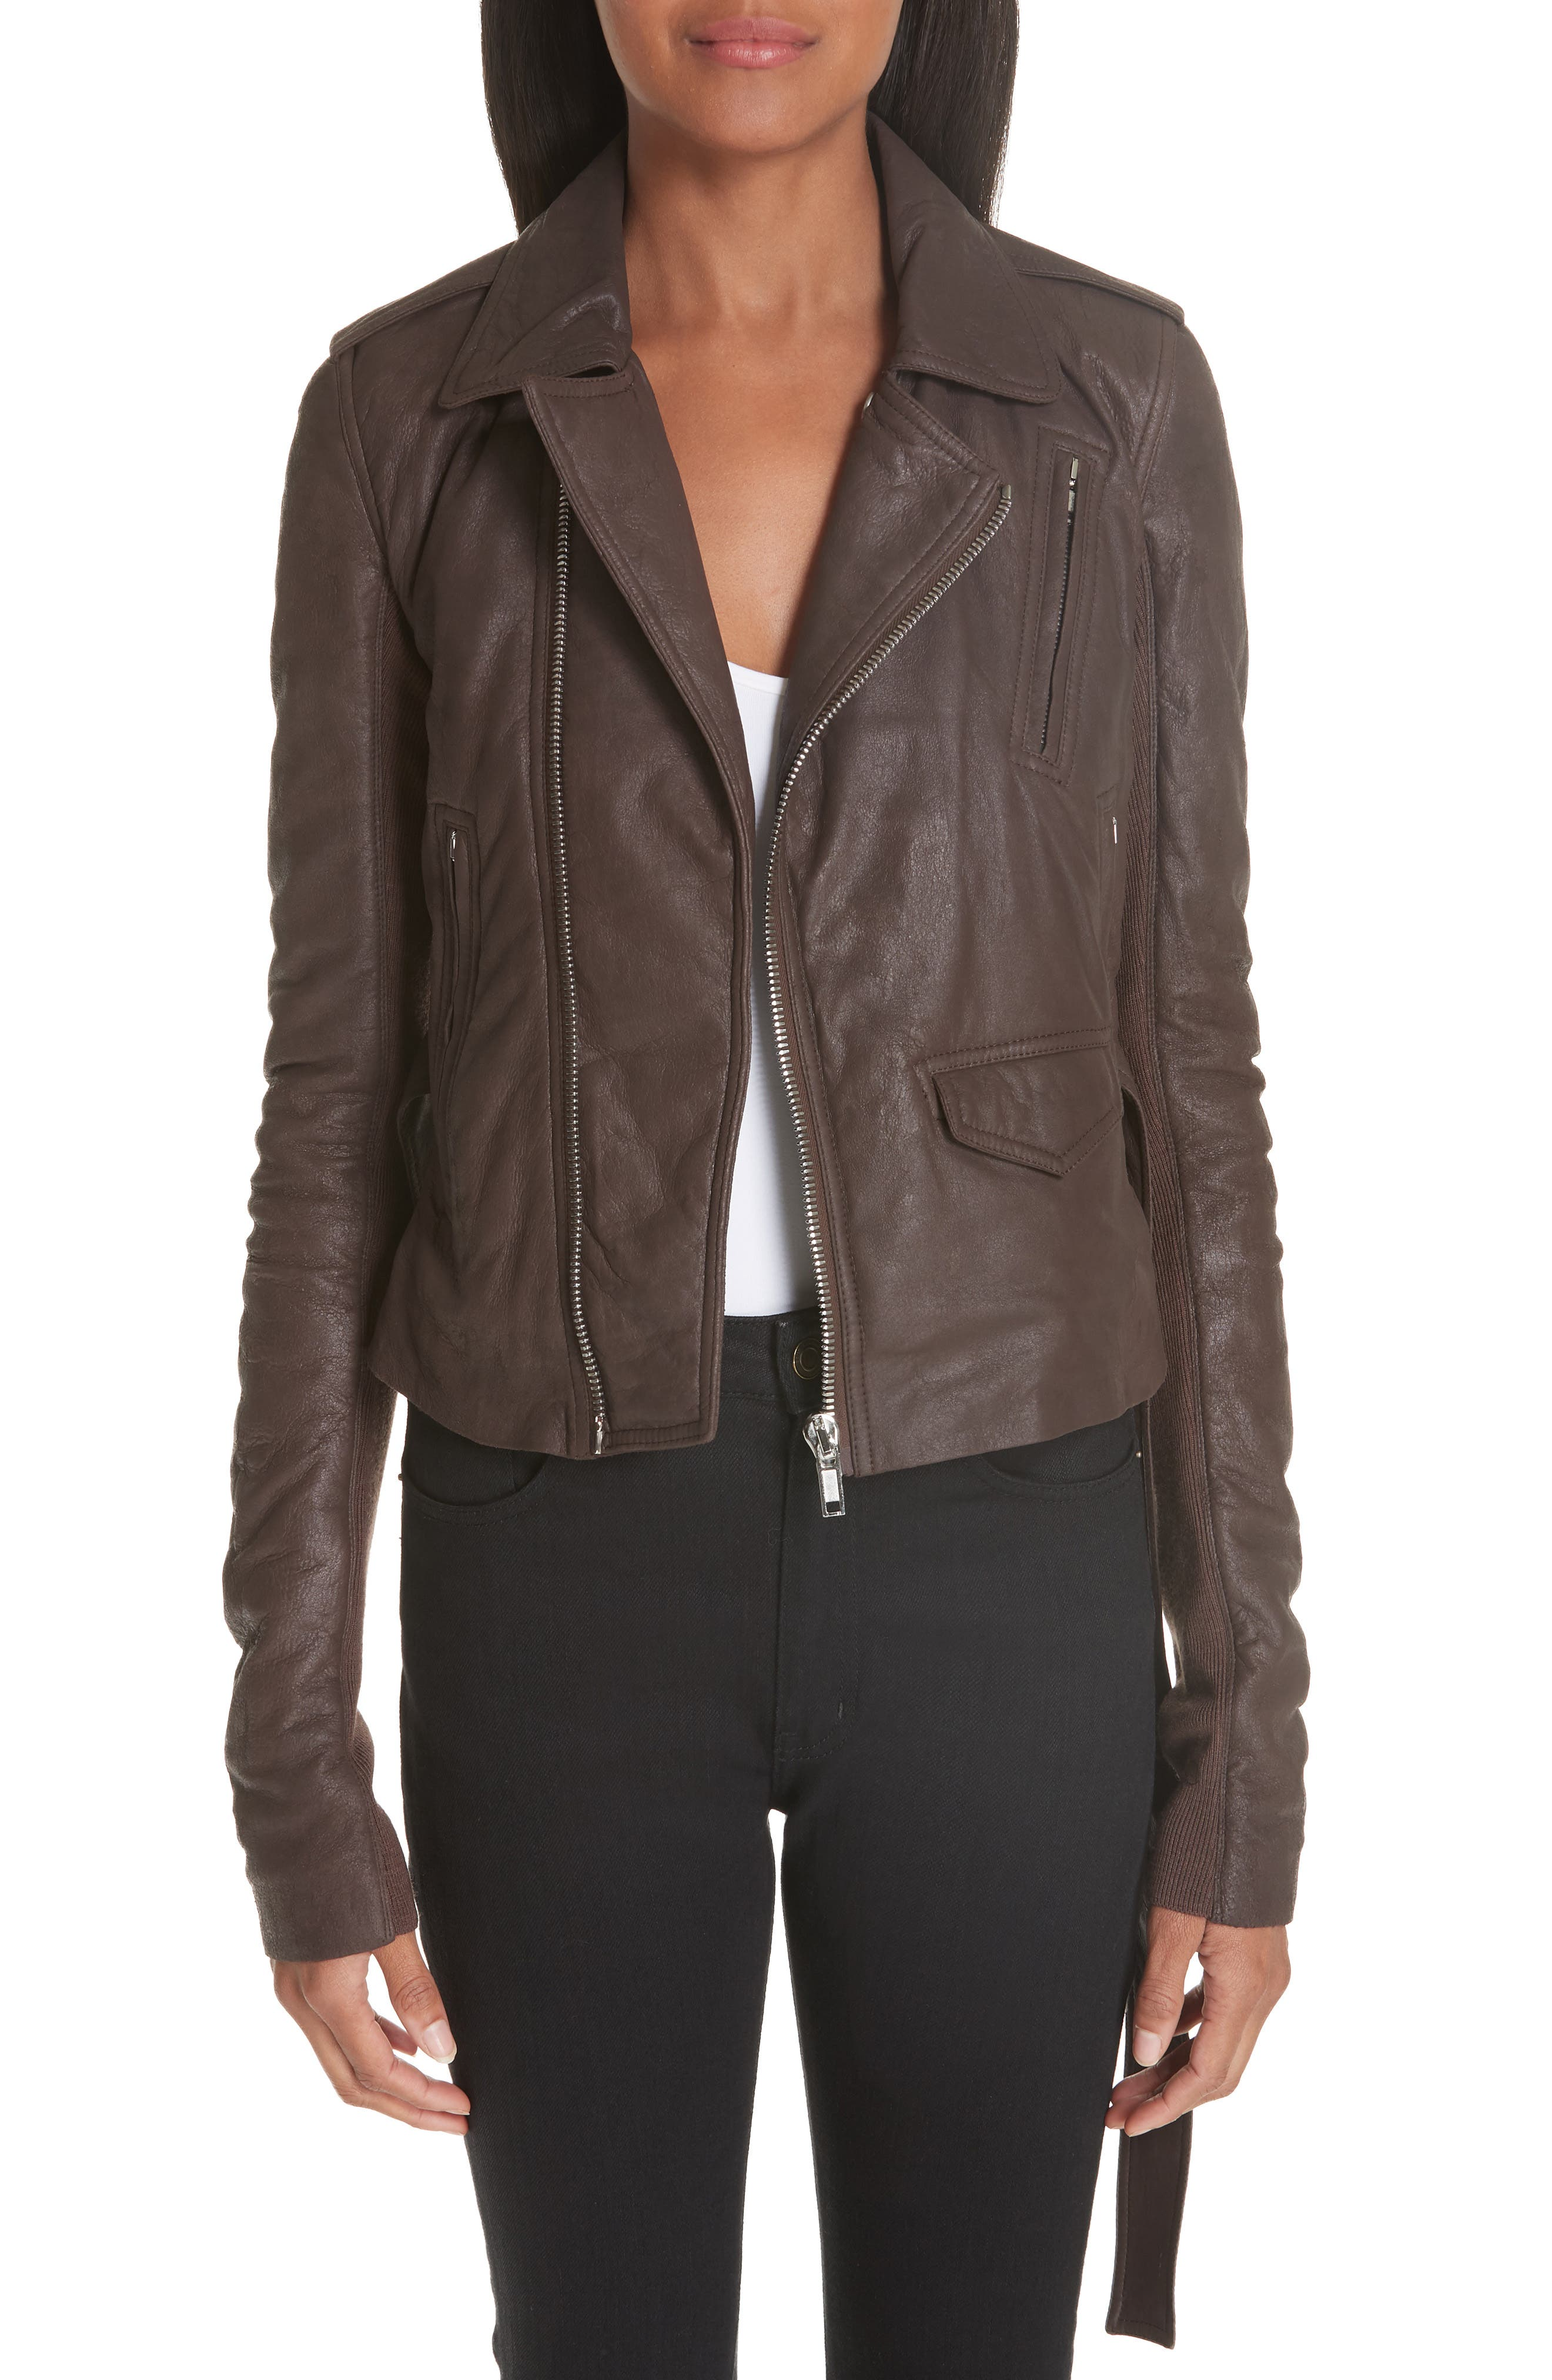 Stooges Belted Leather Jacket,                             Main thumbnail 1, color,                             201